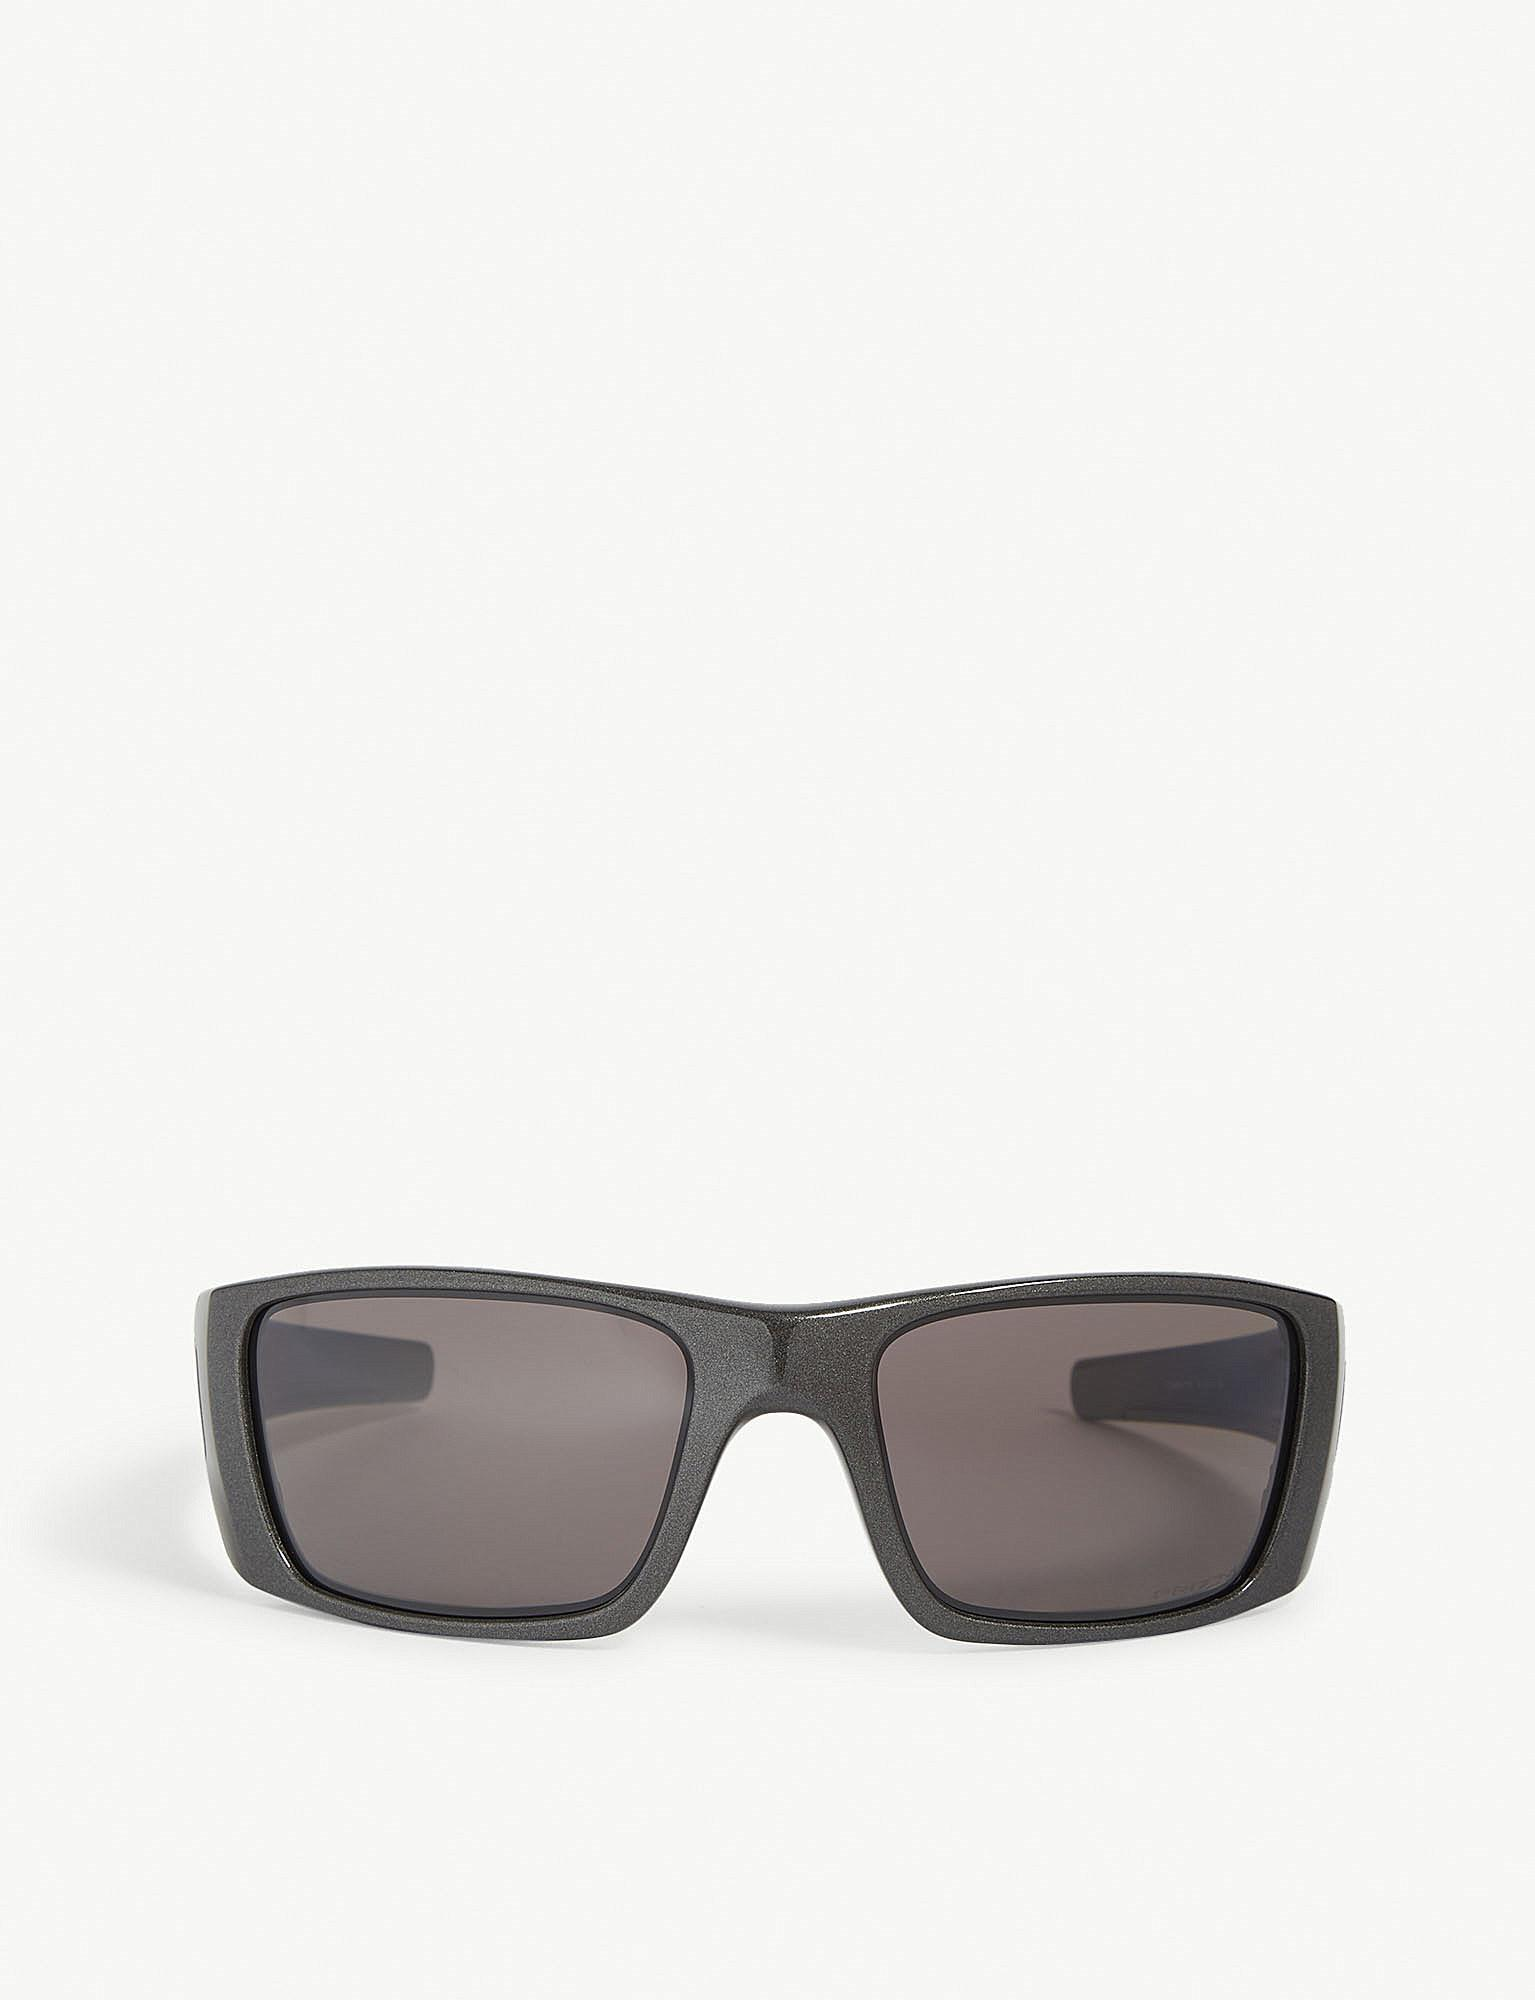 Lyst - Oakley Fuel Cell Rectangle-frame Sunglasses in Gray